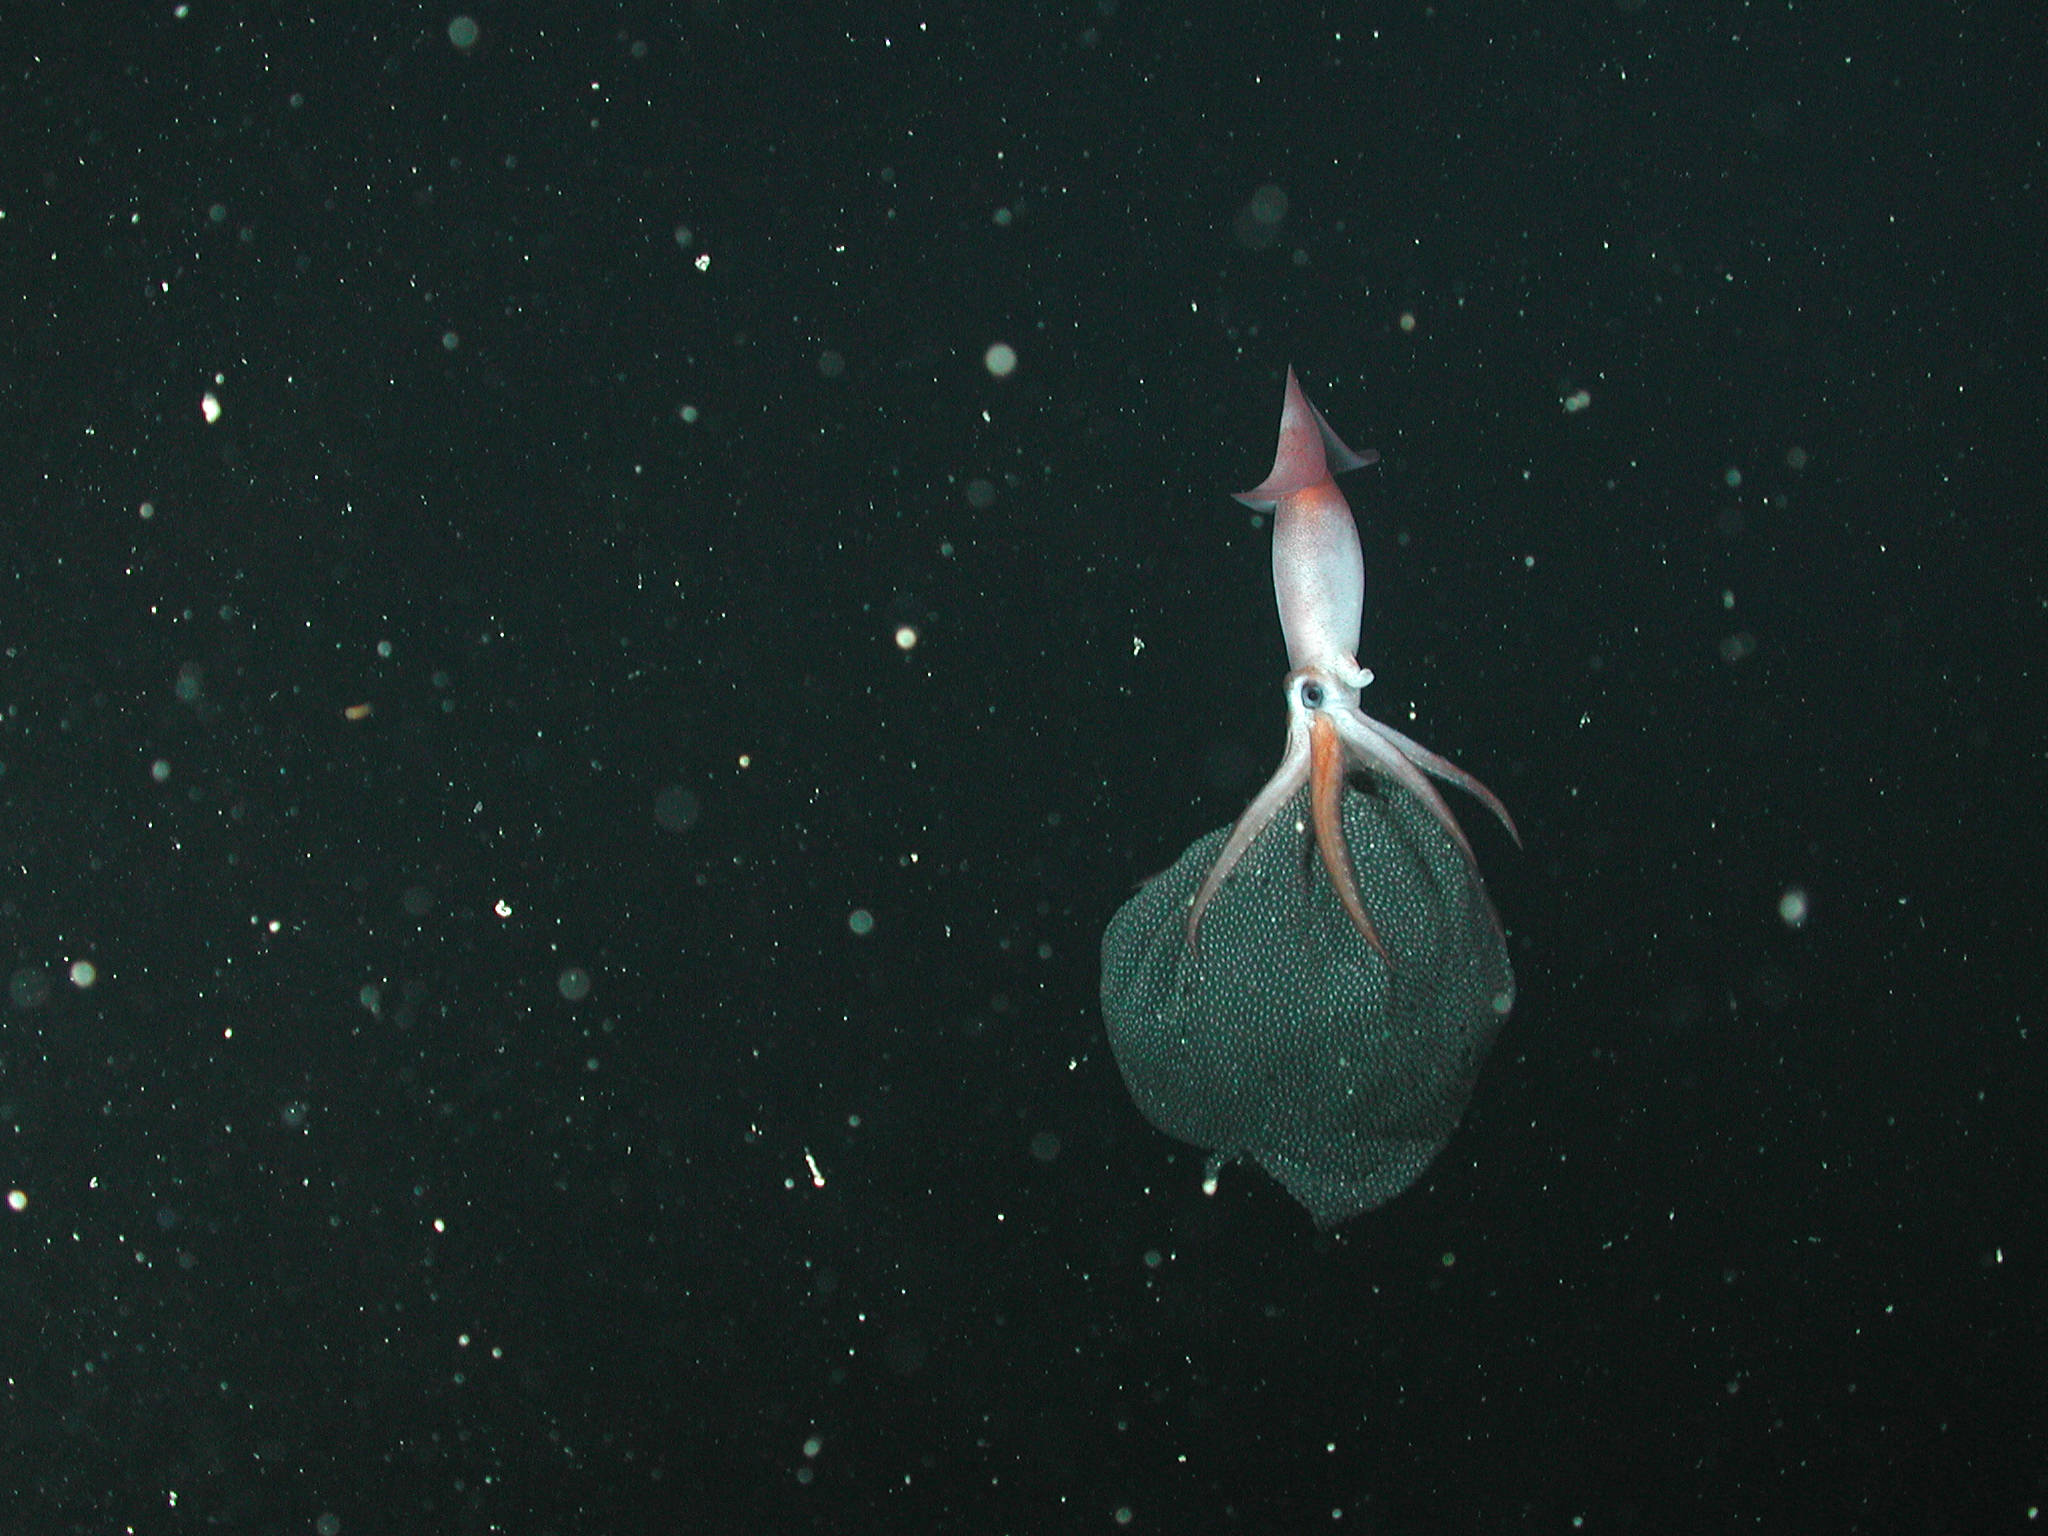 a squid in the deep dark ocean with a large black blob of eggs beneath its tentacles